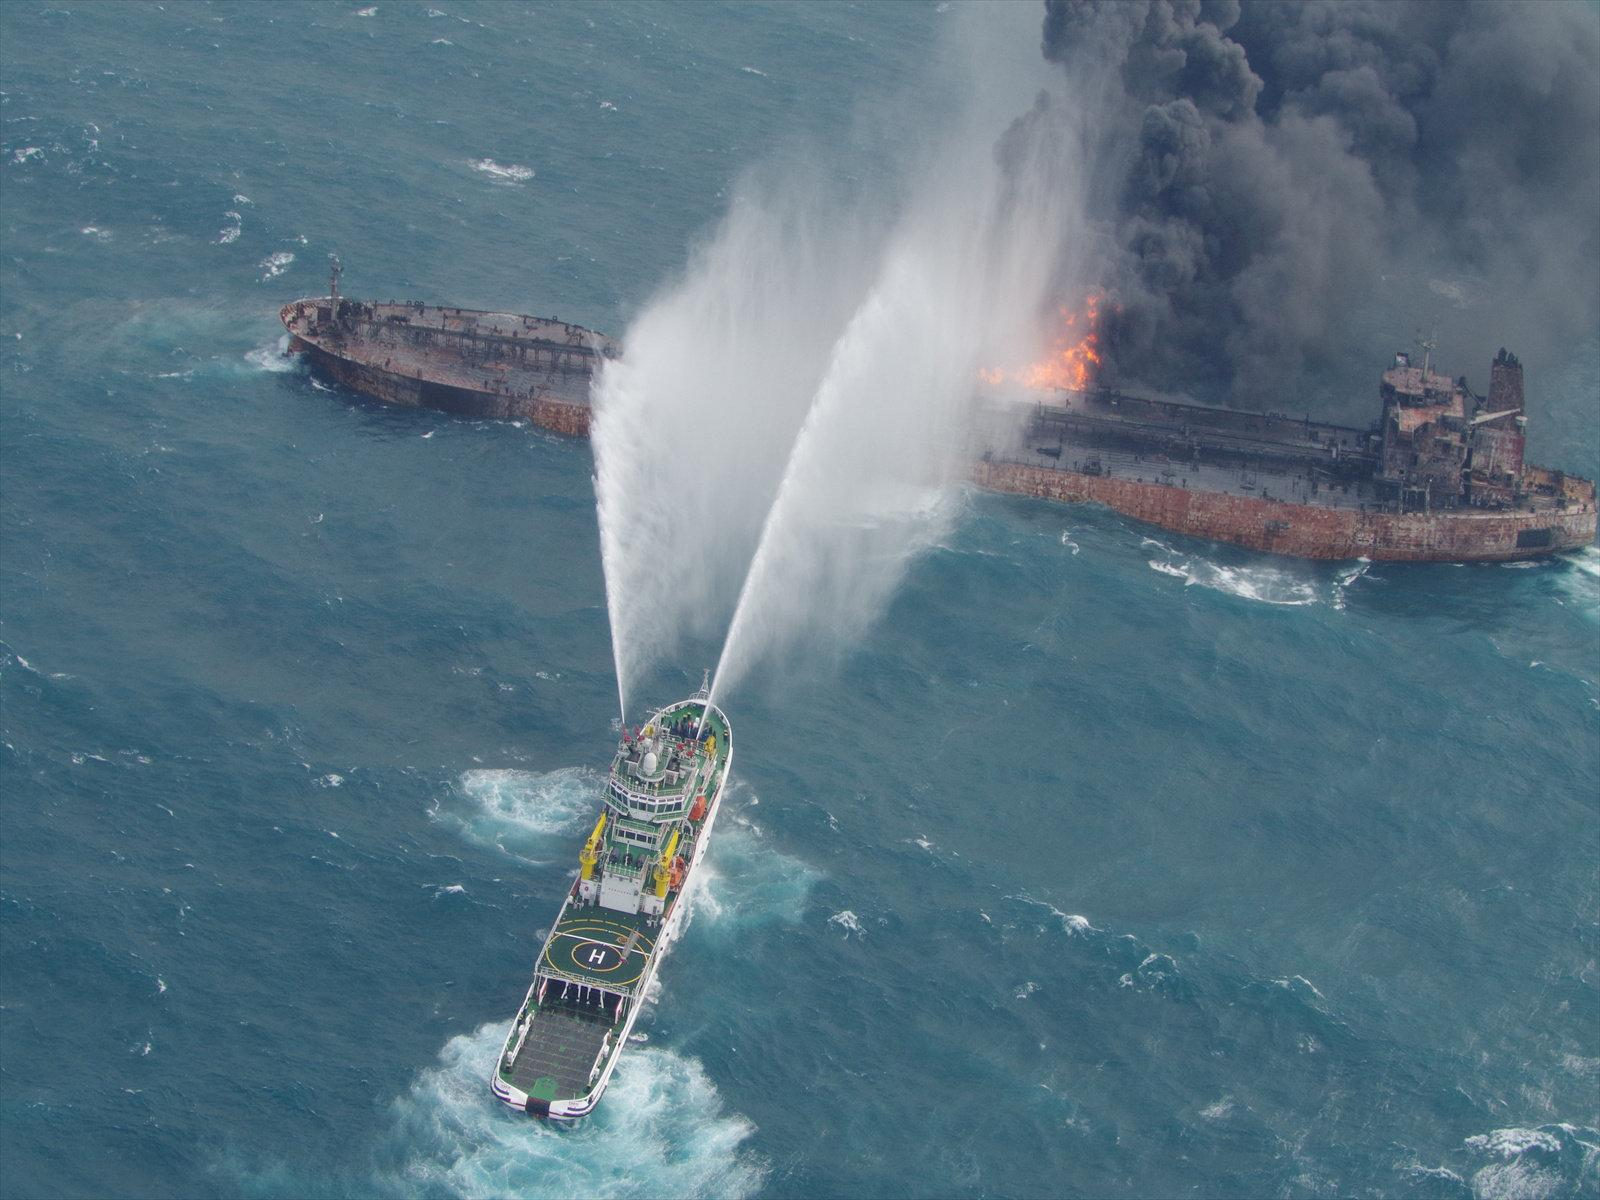 A rescue ship works to extinguish the fire on the stricken Iranian oil tanker Sanchi in the East China Sea, on January 10, 2018 in this photo provided by Japan's 10th Regional Coast Guard. Picture taken on January 10, 2018.  10th Regional Coast Guard Headquarters/Handout via